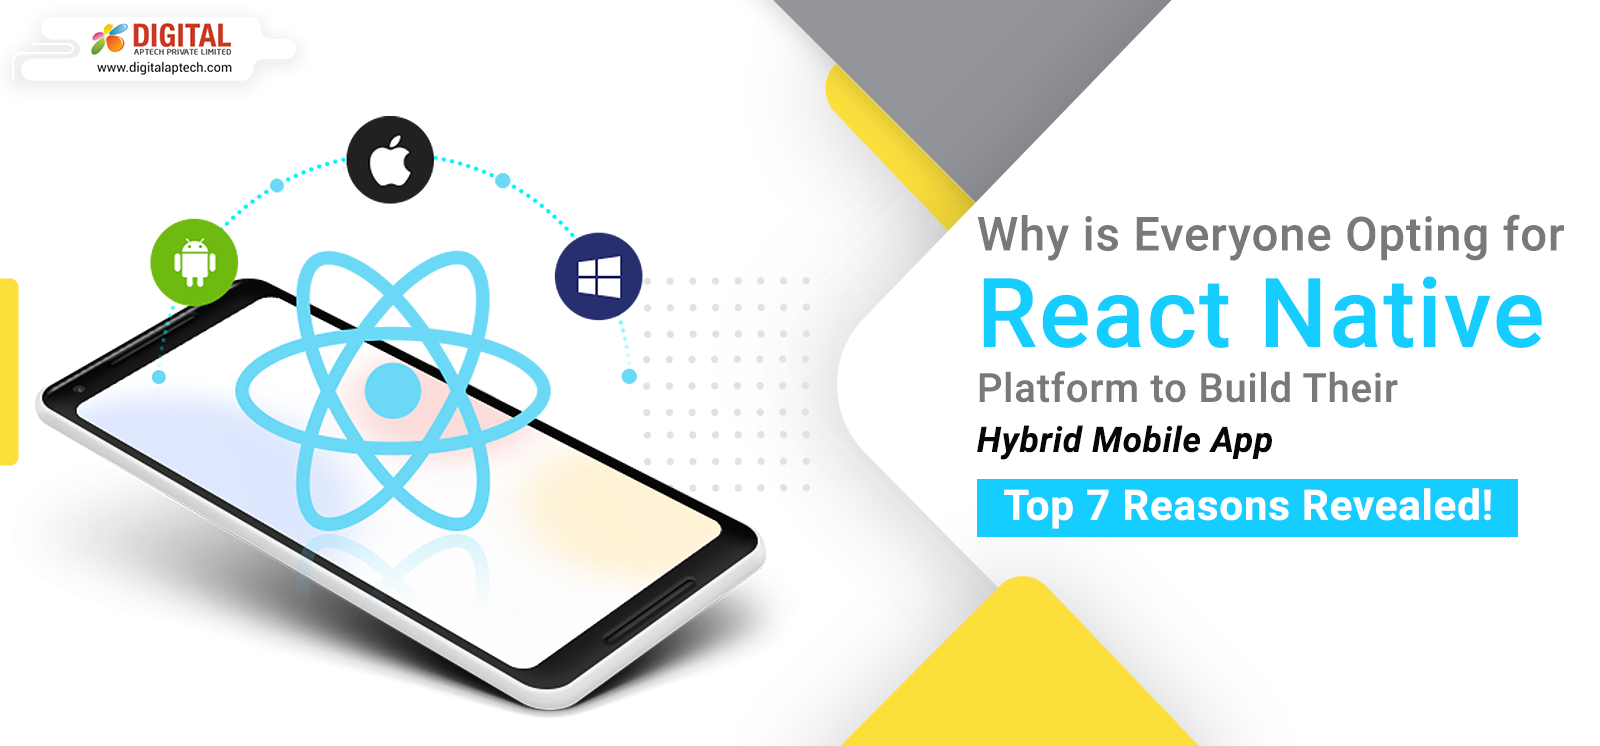 Why is Everyone Opting for React Native Platform to Build Their Hybrid Mobile App: Top 7 Reasons Revealed!